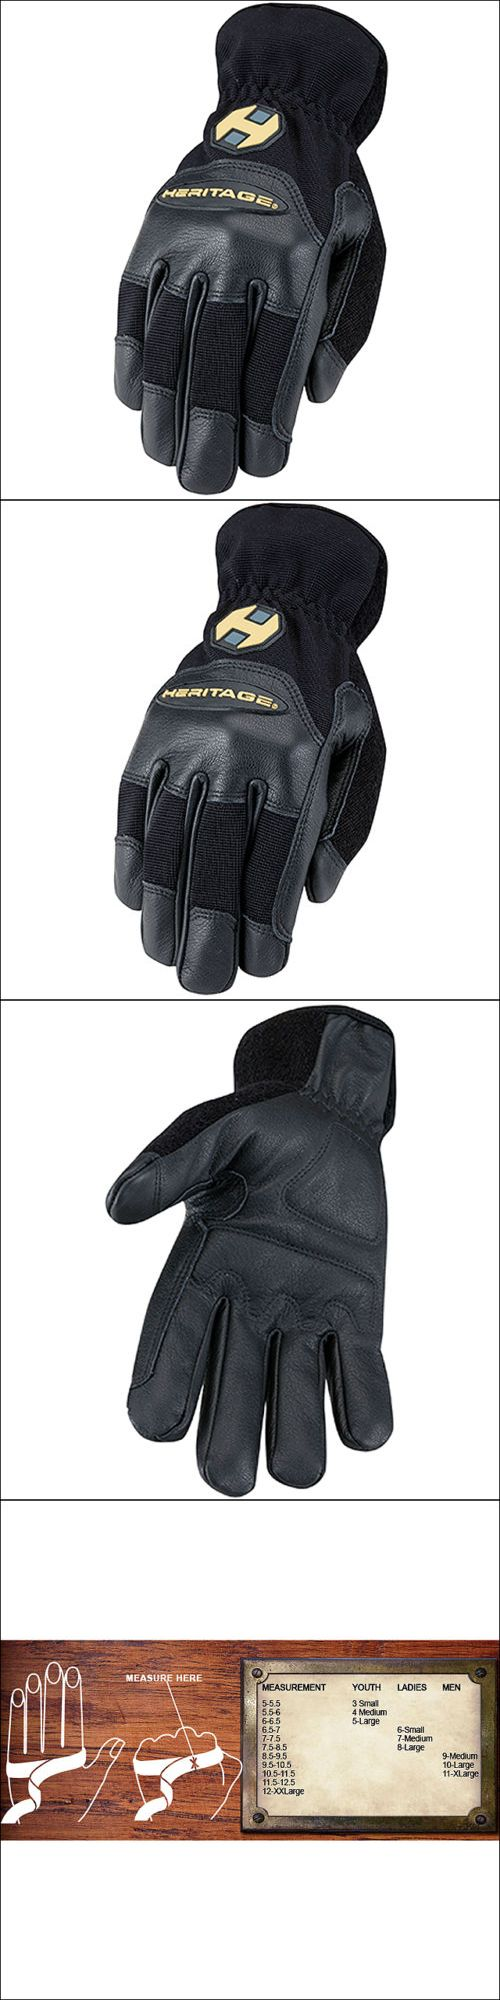 Ladies leather horse riding gloves - Riding Gloves 95104 9 Size Heritage Trainer Horse Riding Stretchable Goatskin Leather Gloves Black